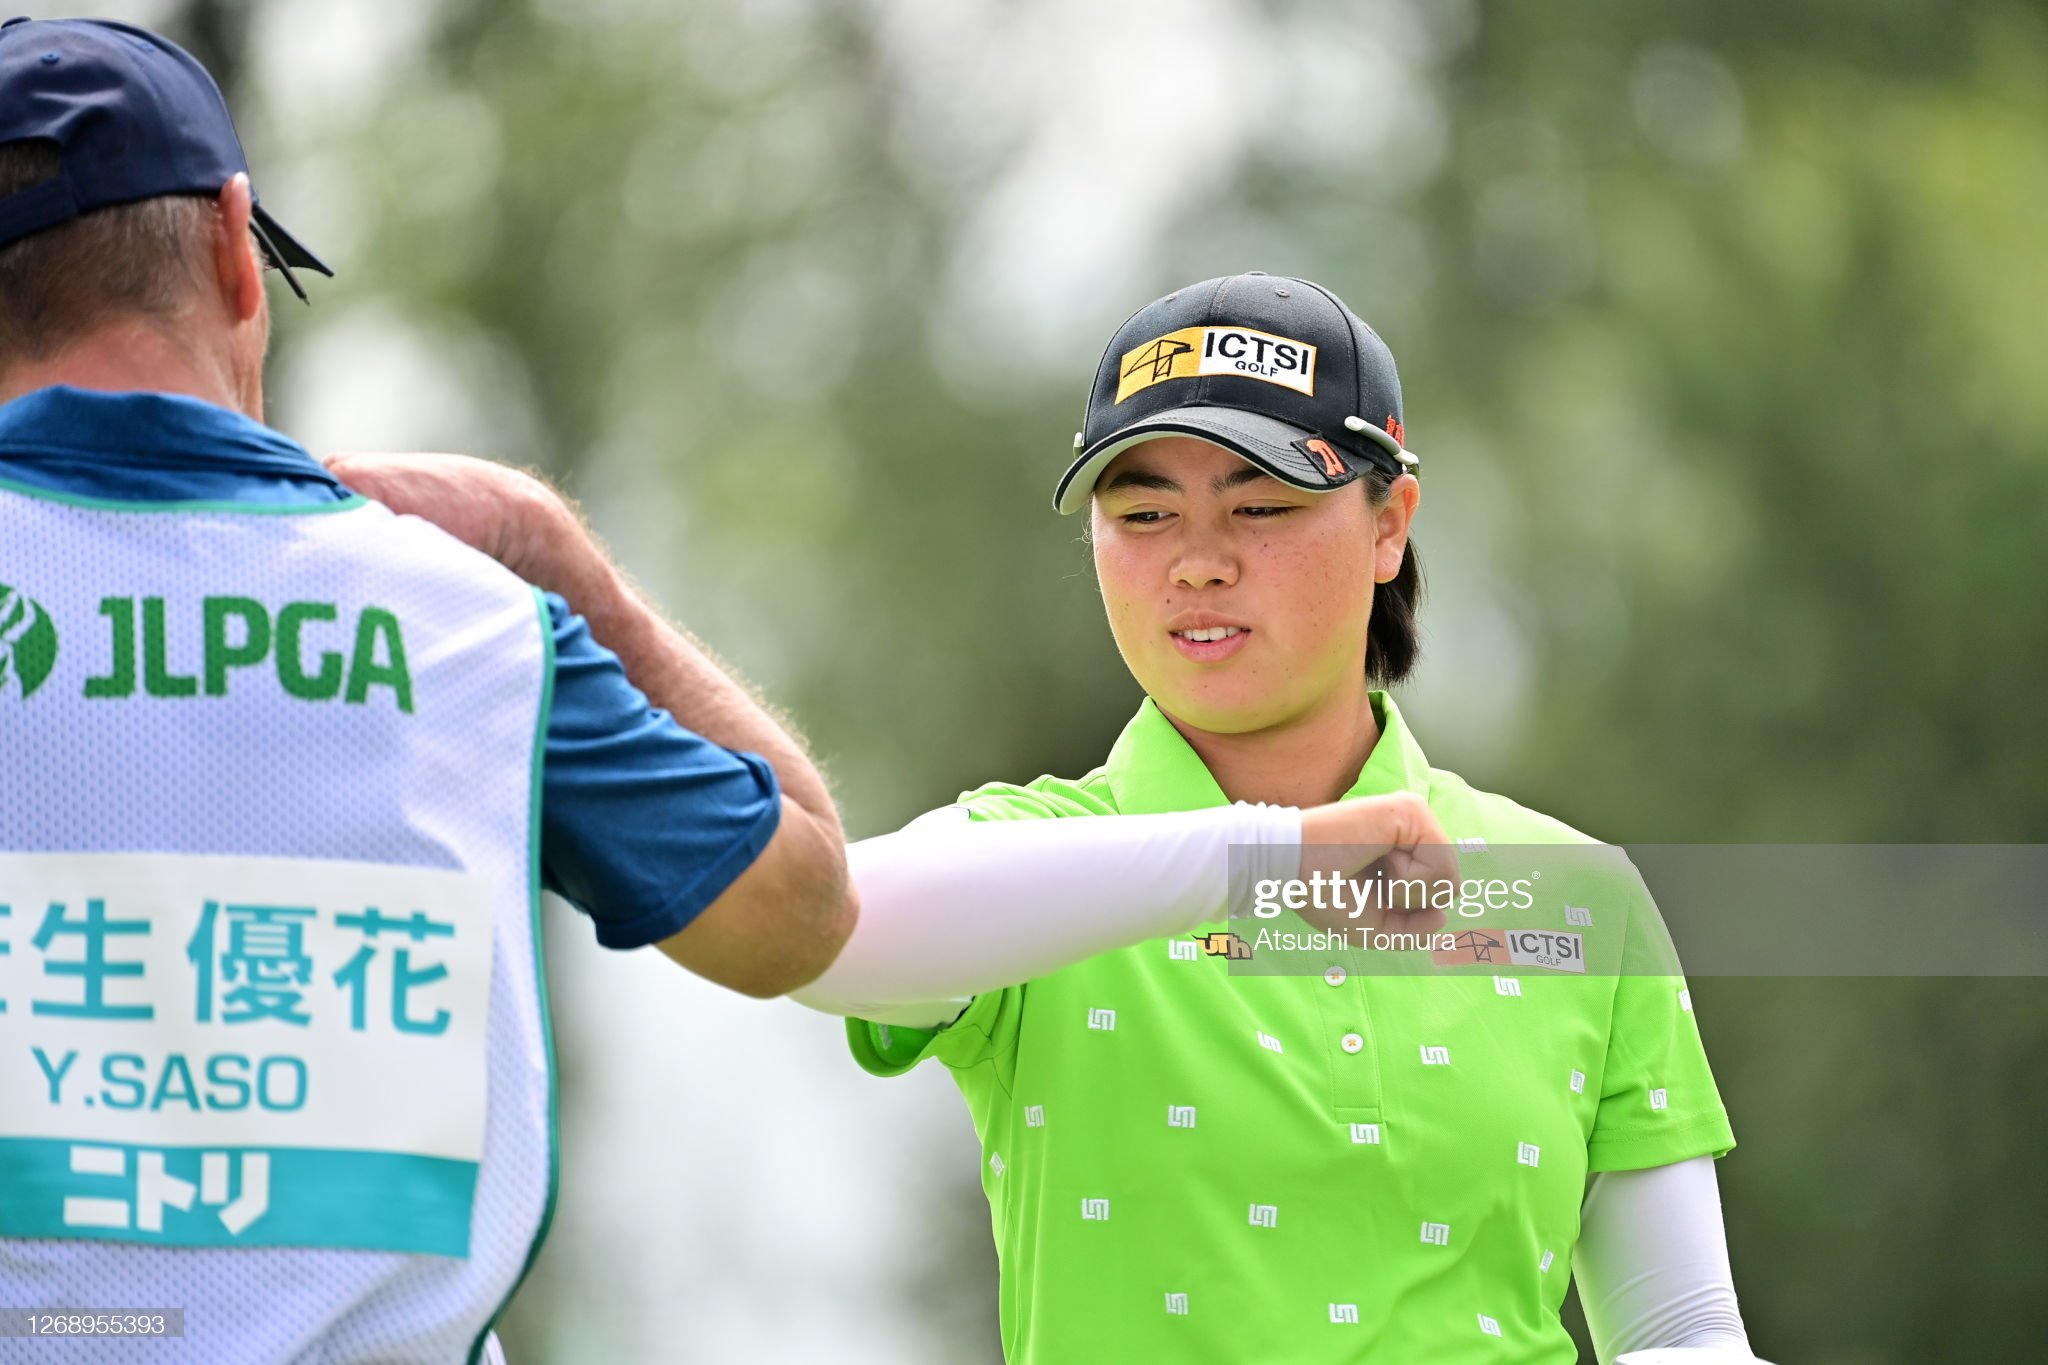 https://media.gettyimages.com/photos/yuka-saso-of-japan-elbow-bumps-with-her-caddie-after-holing-out-on-picture-id1268955393?s=2048x2048